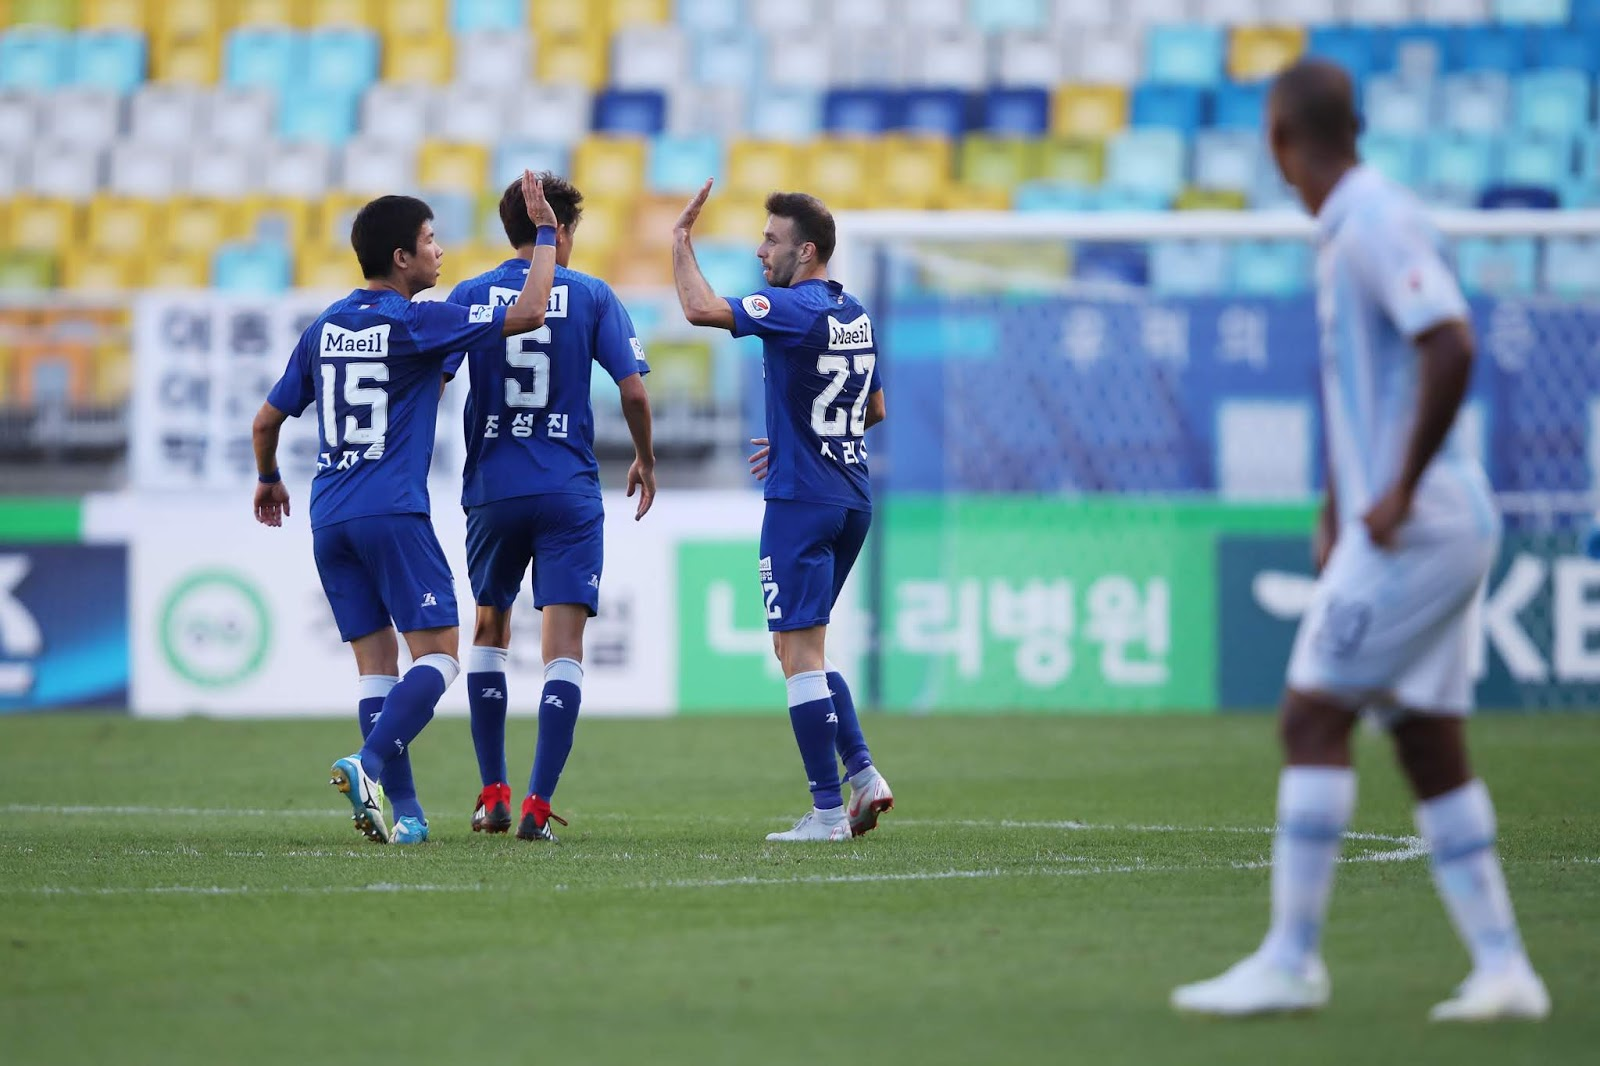 FA Cup Quarter-Final Preview: Suwon Bluewings vs Jeju United